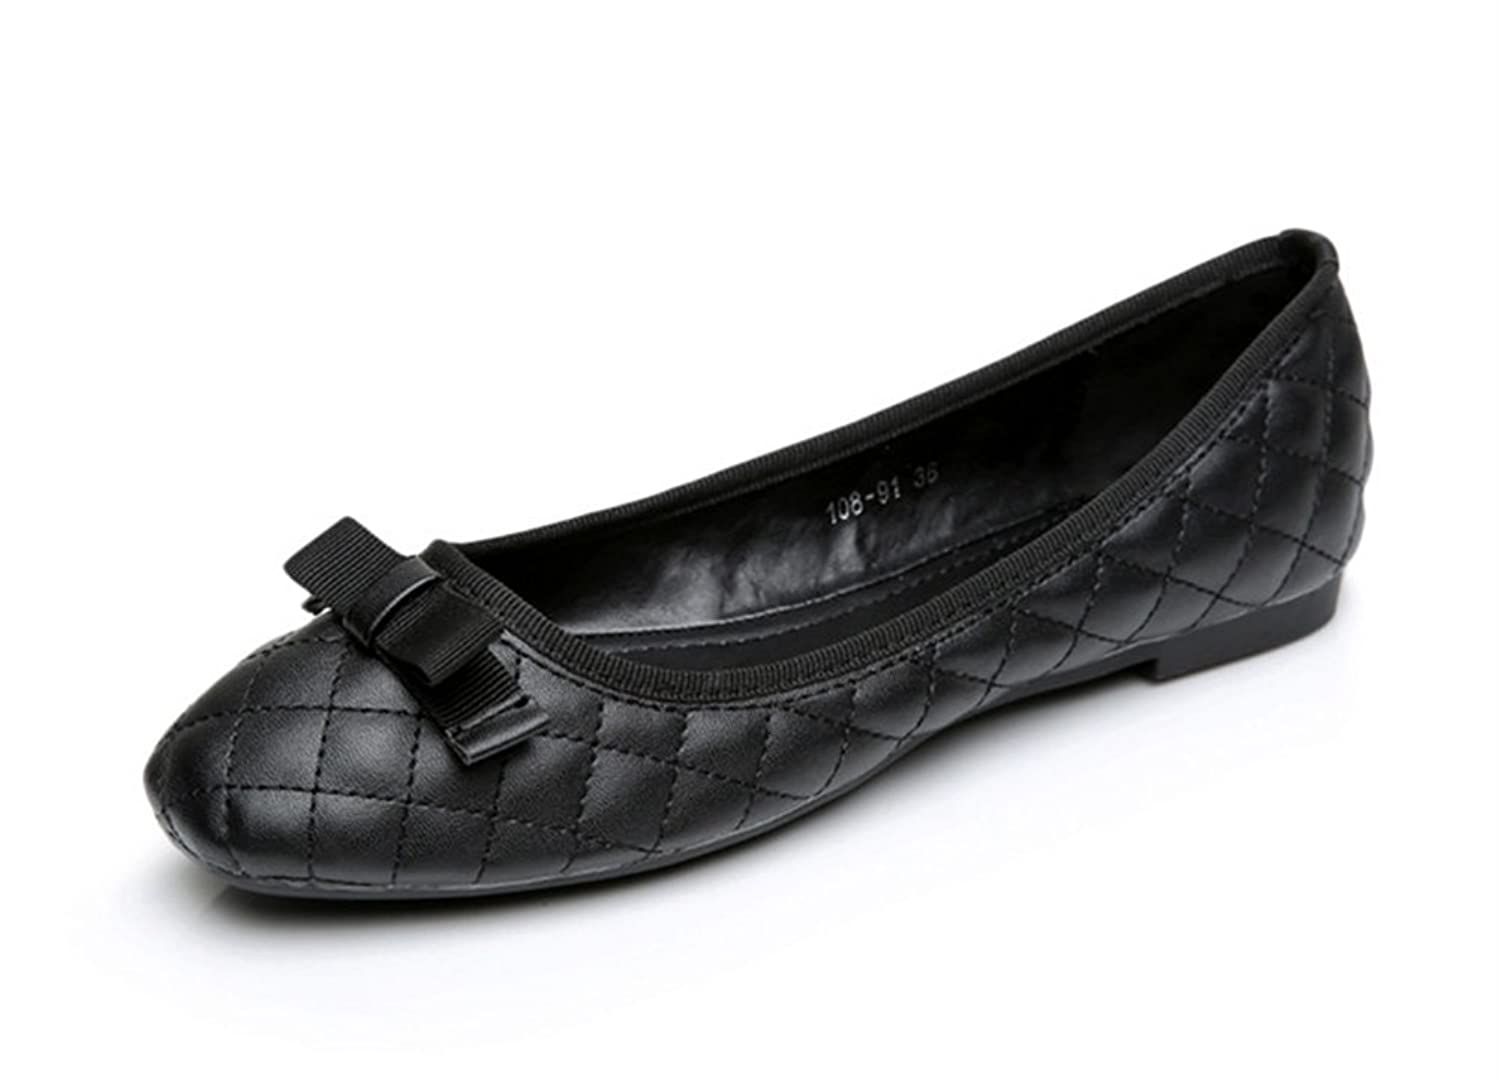 Aisun Women's Comfy Sweet Bowknot Plaid Flat Slip On Loafers Black